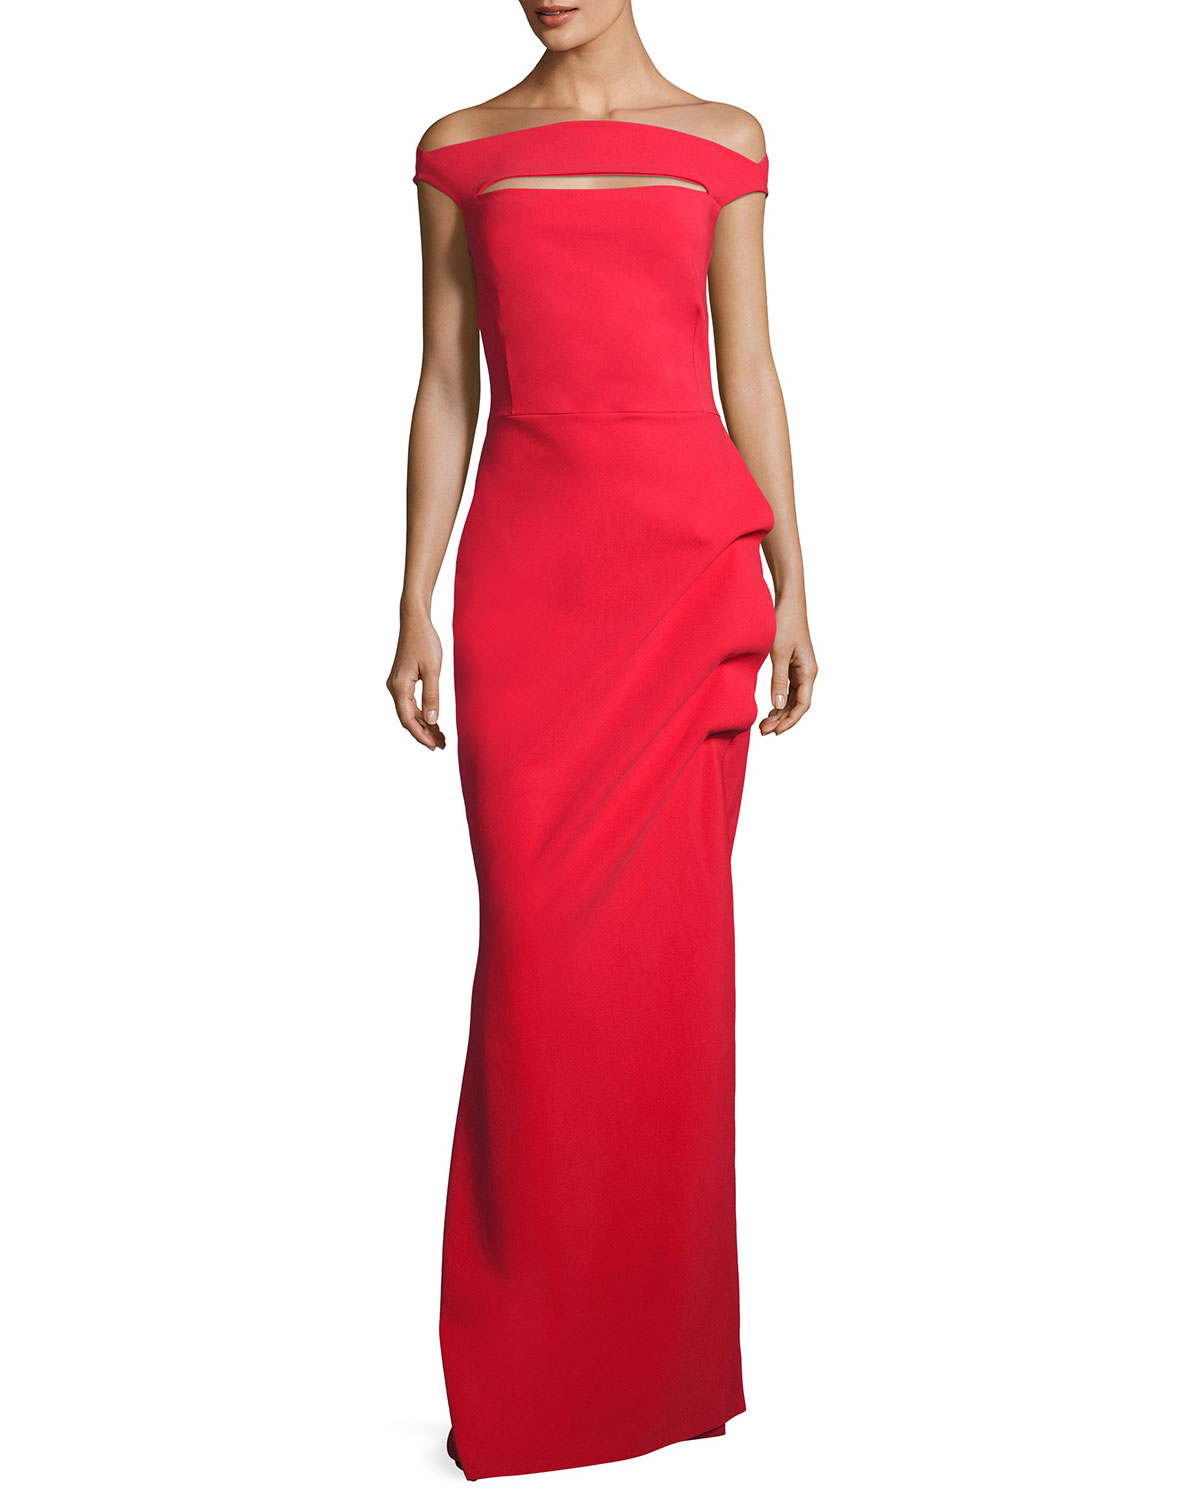 Red Evening Gown | Neiman Marcus